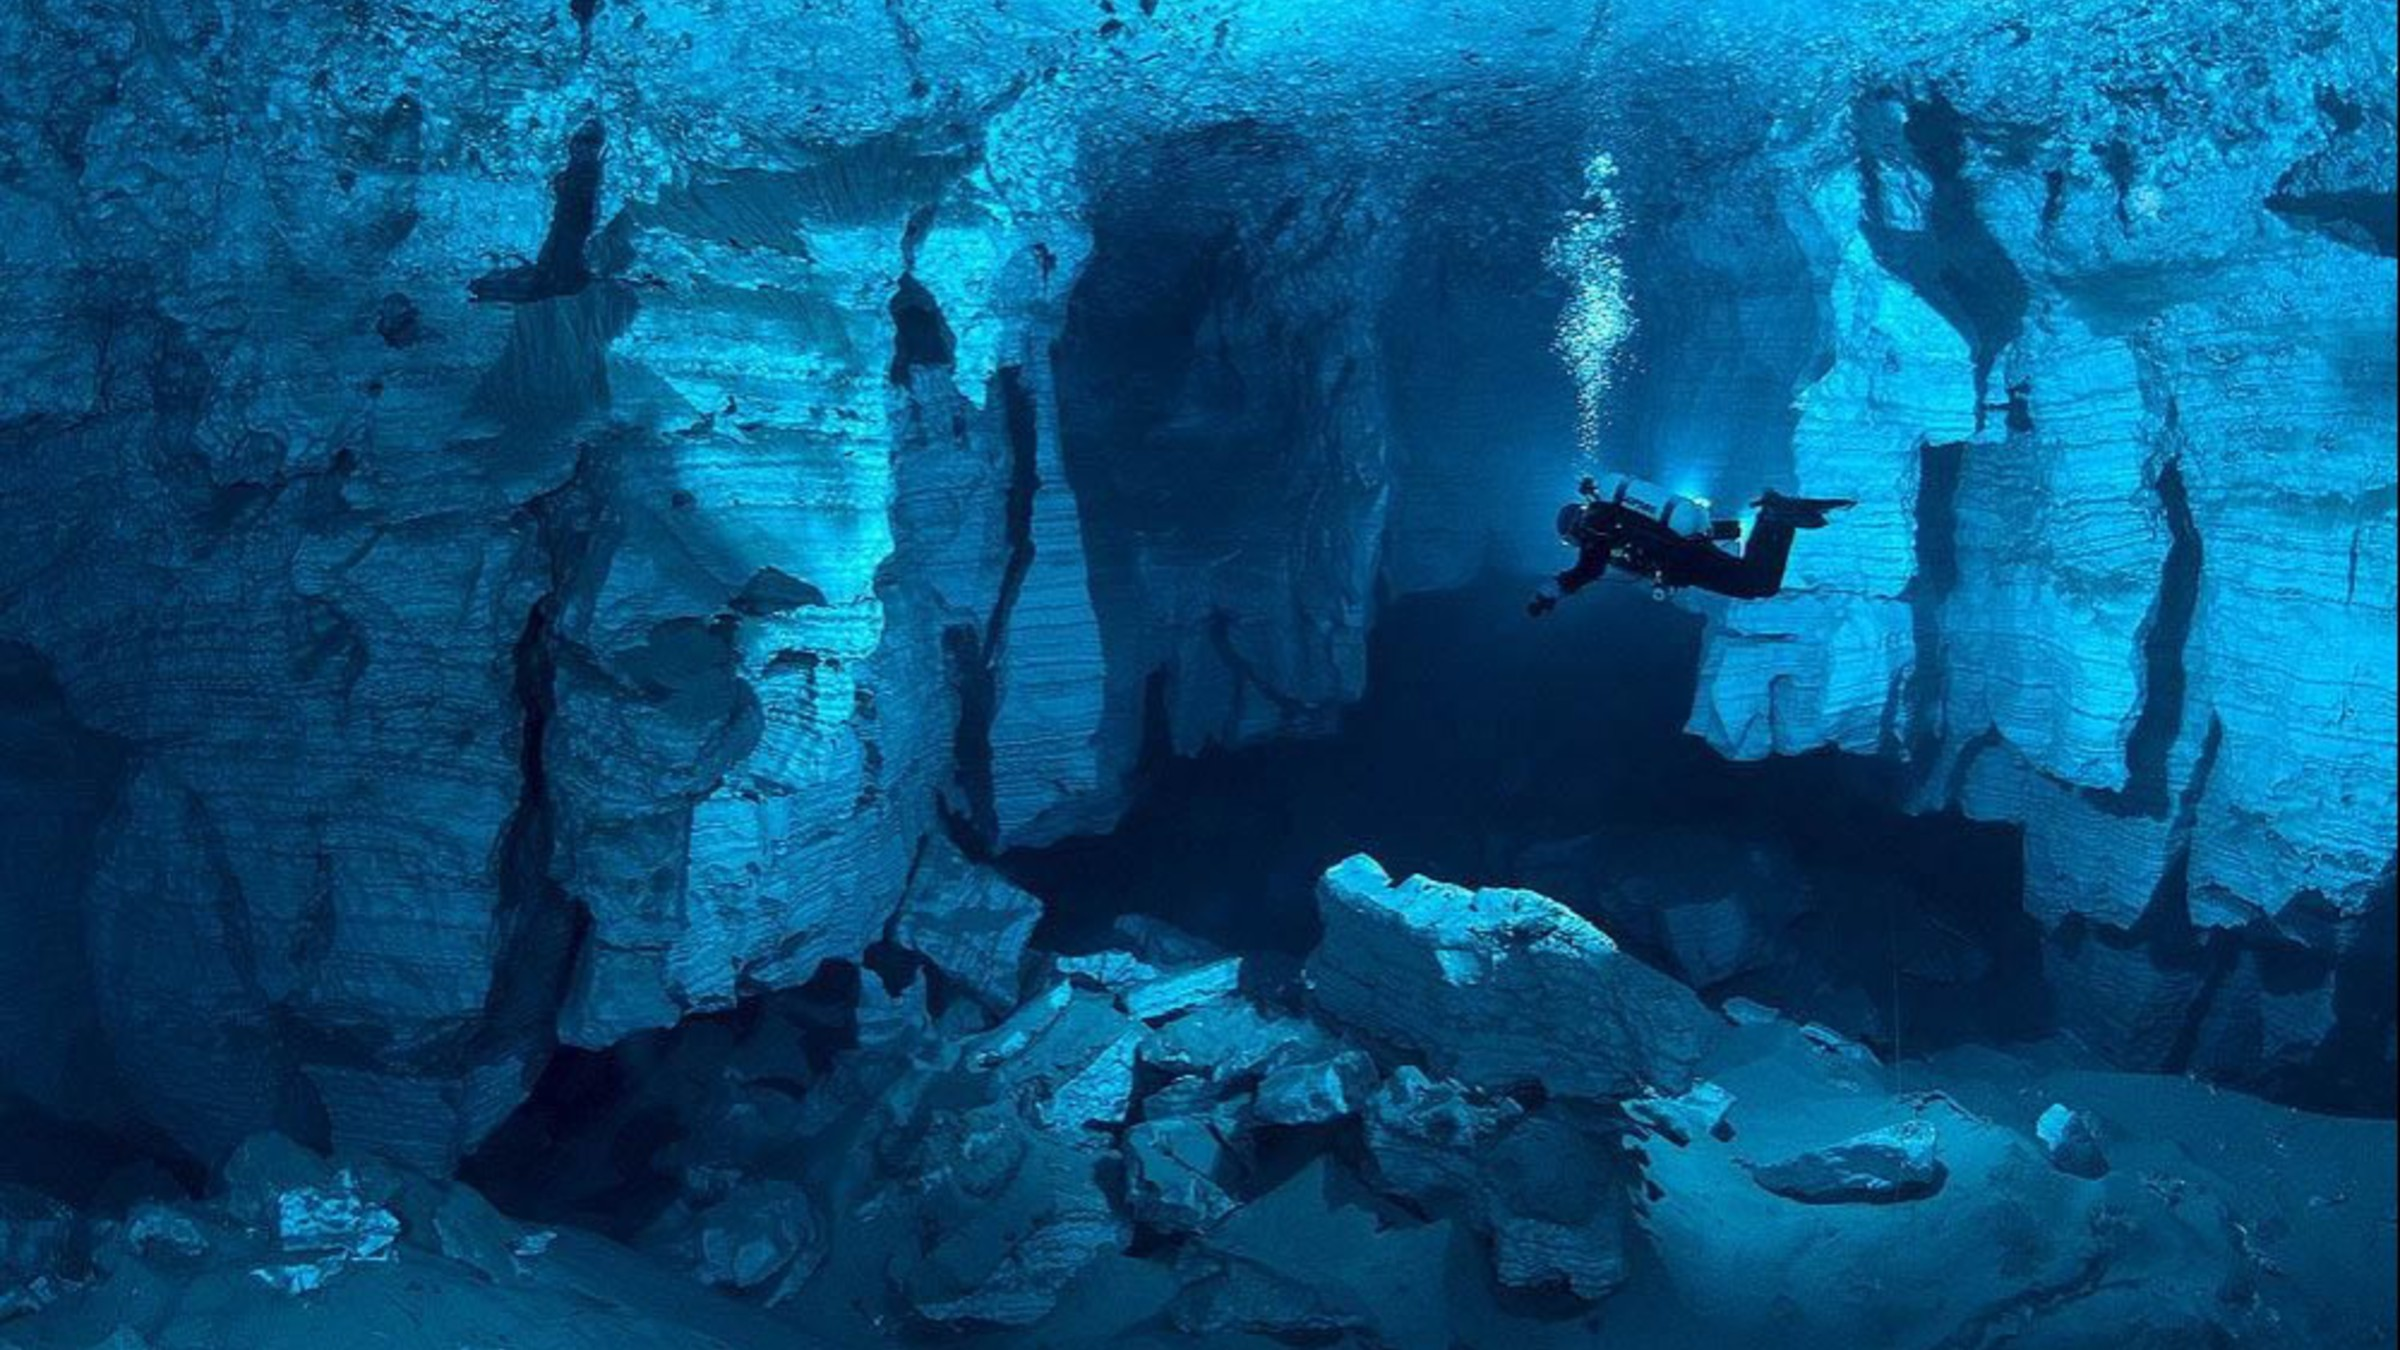 Landscapes cave russia underwater wallpaper allwallpaper - Underwater wallpaper for pc ...